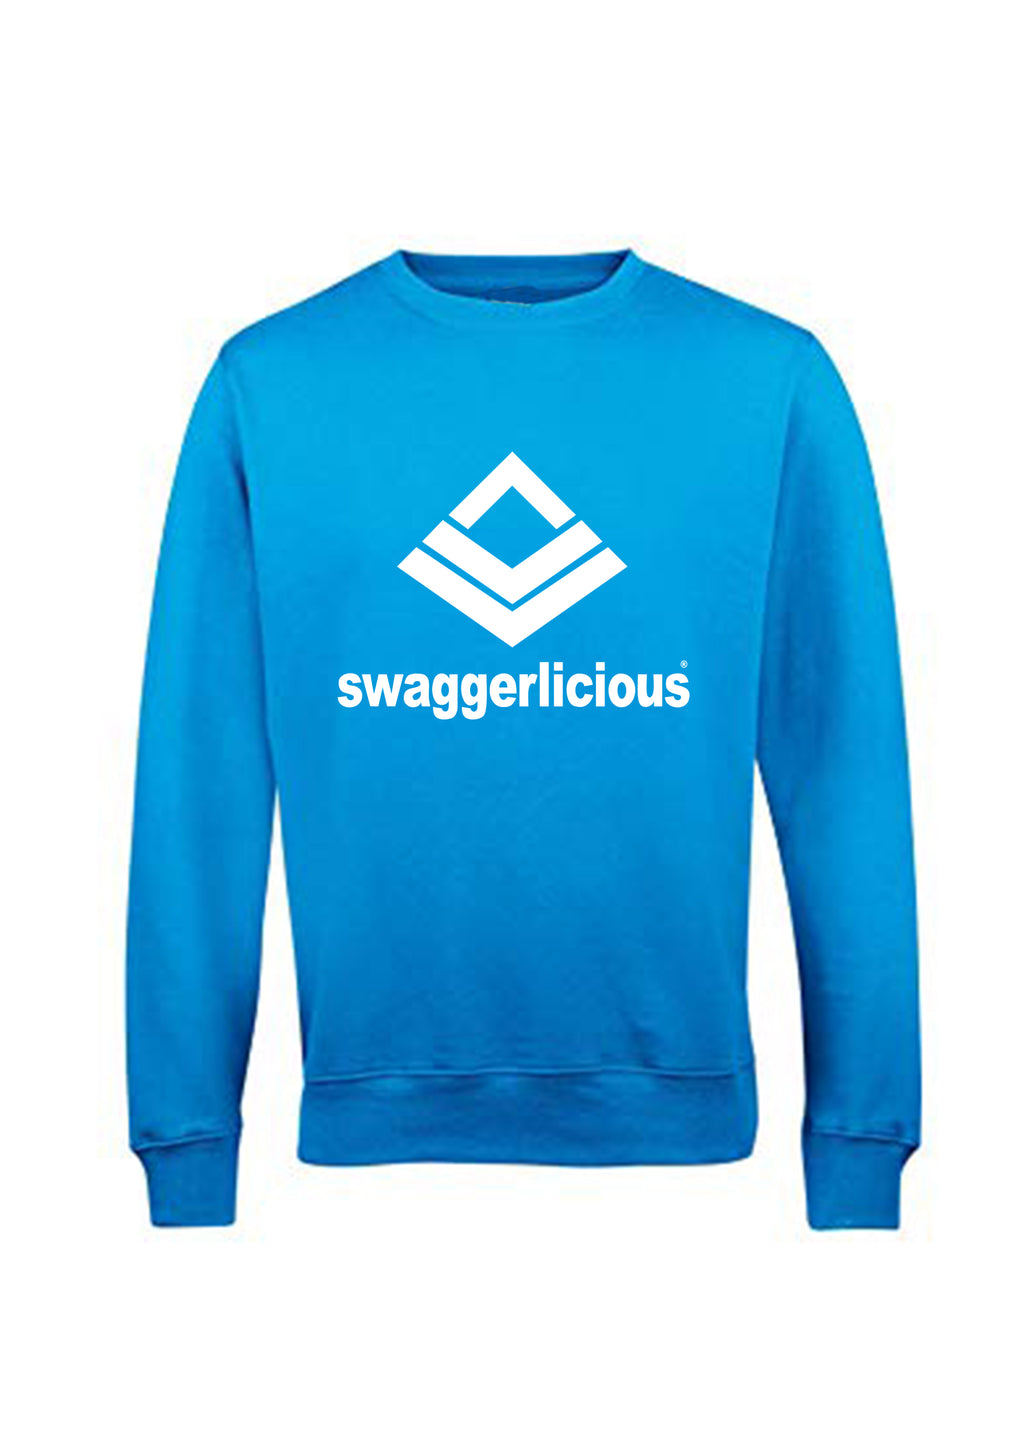 Swaggerlicious Classic Sports Sapphire Blue Sweatshirt - swaggerlicious-clothing.com